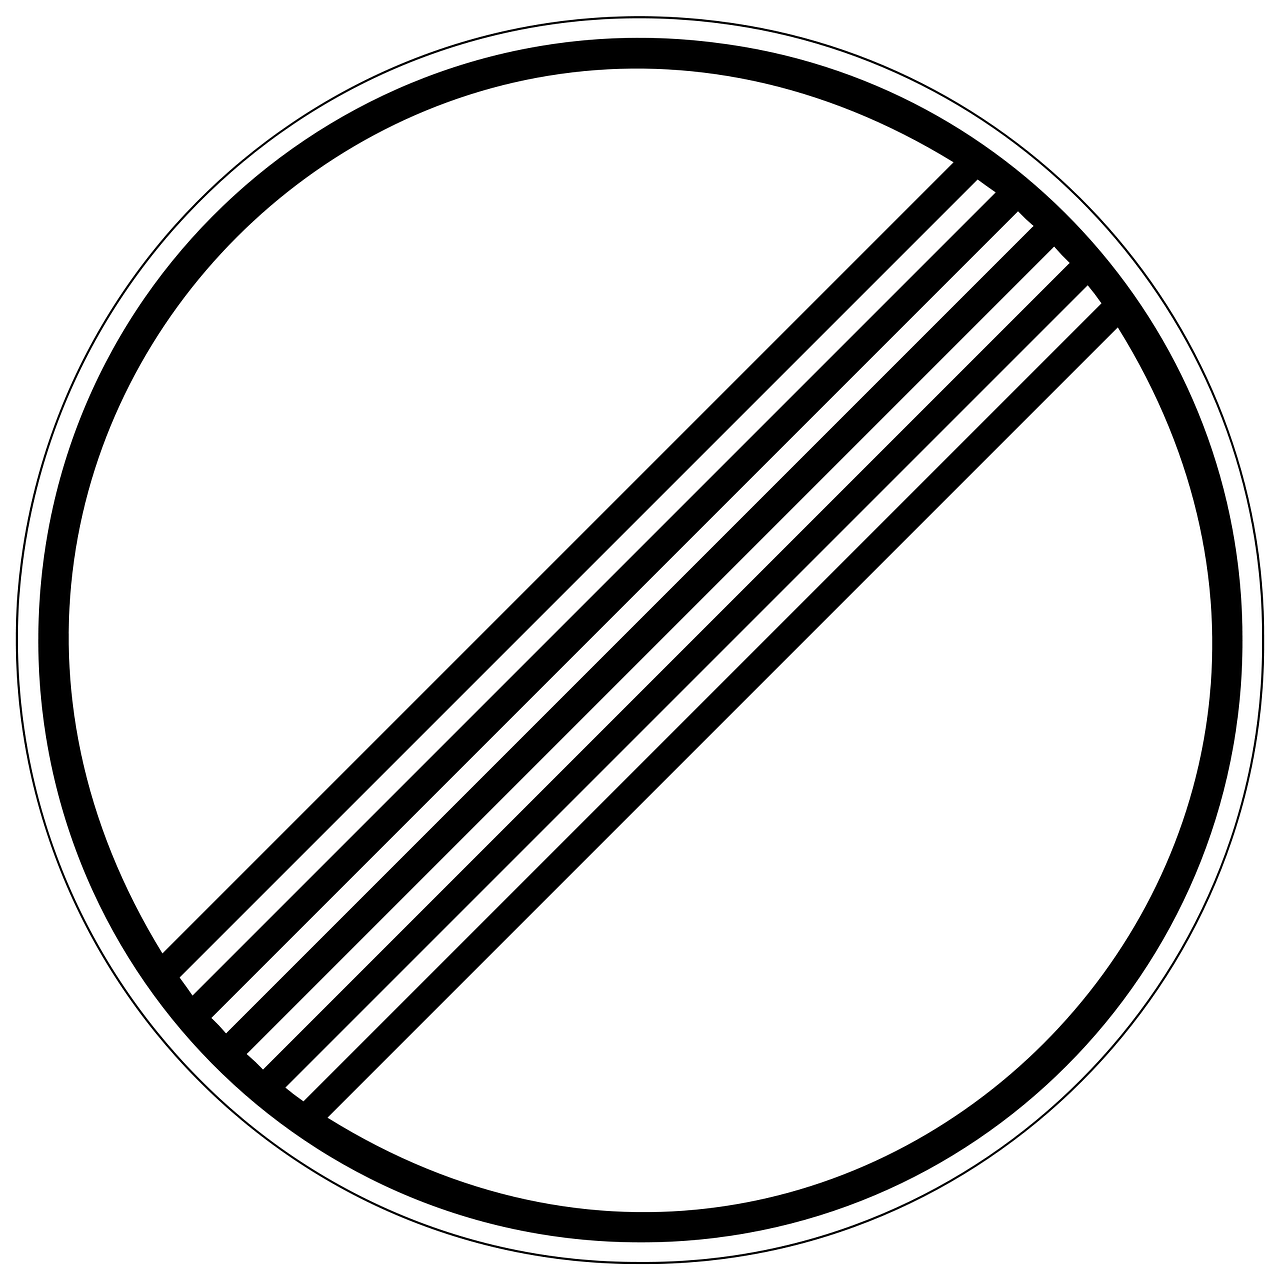 traffic sign road sign shield free photo